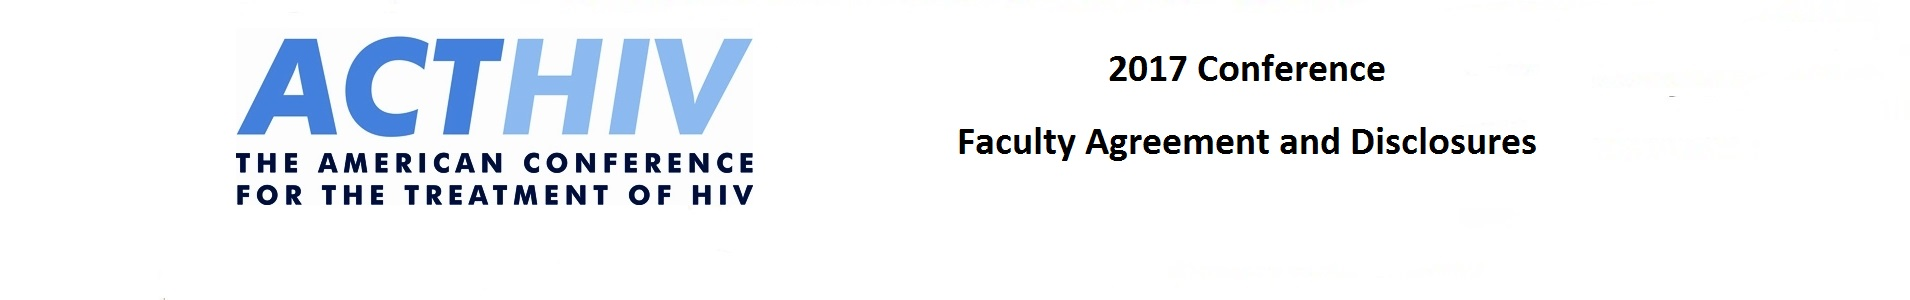 2017 ACTHIV Faculty